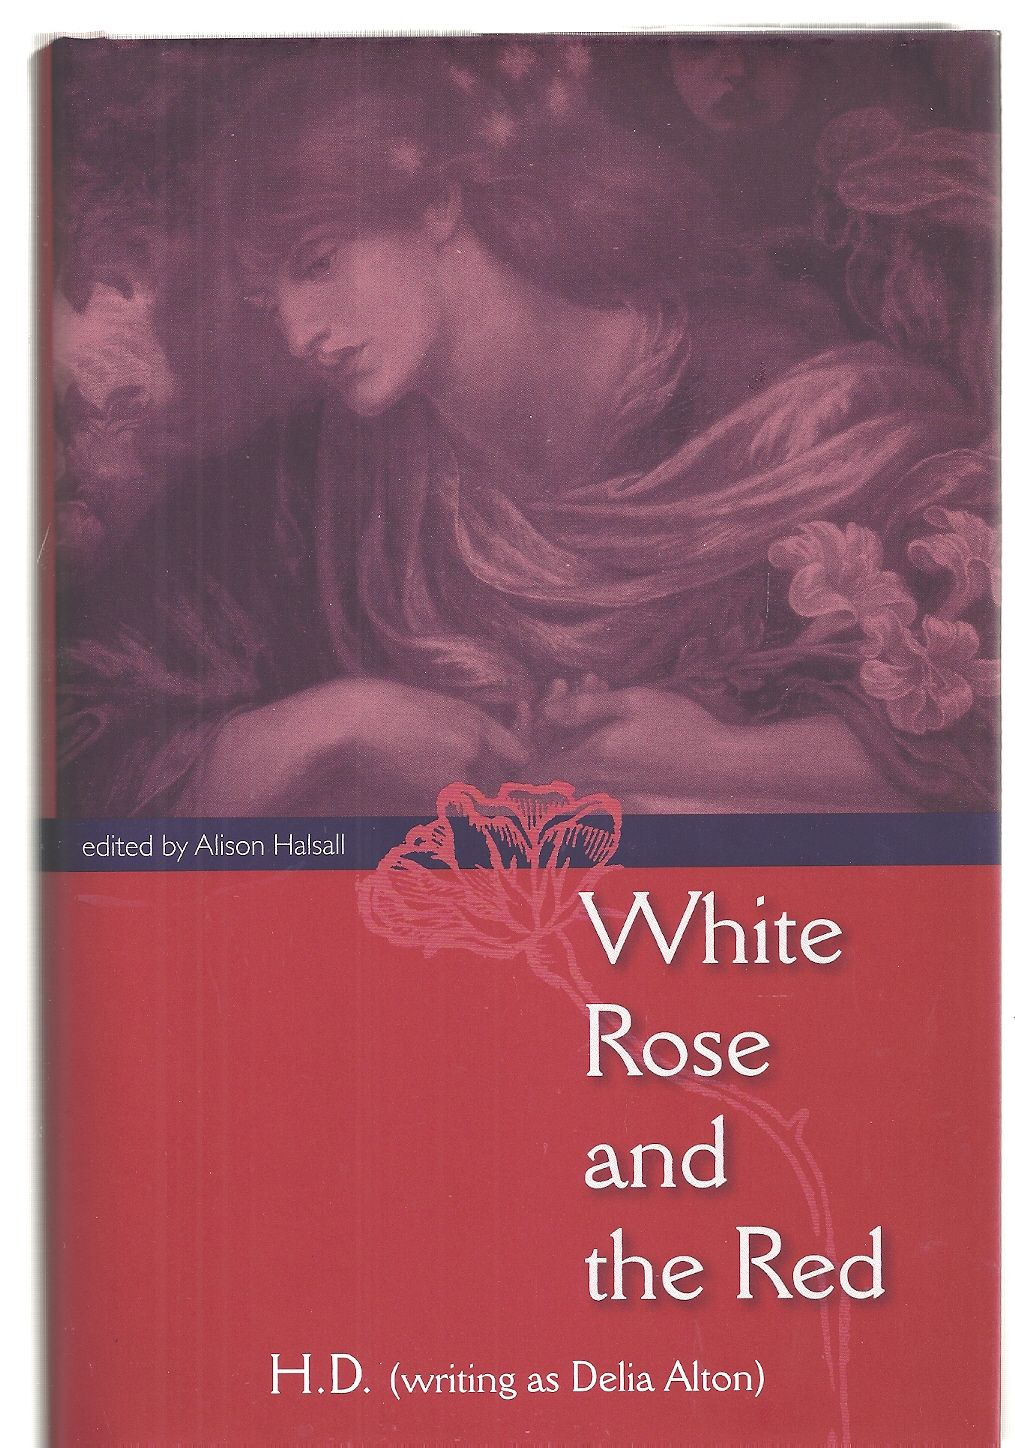 White Rose and the Red, (Writing As Delia Alton), H.D.